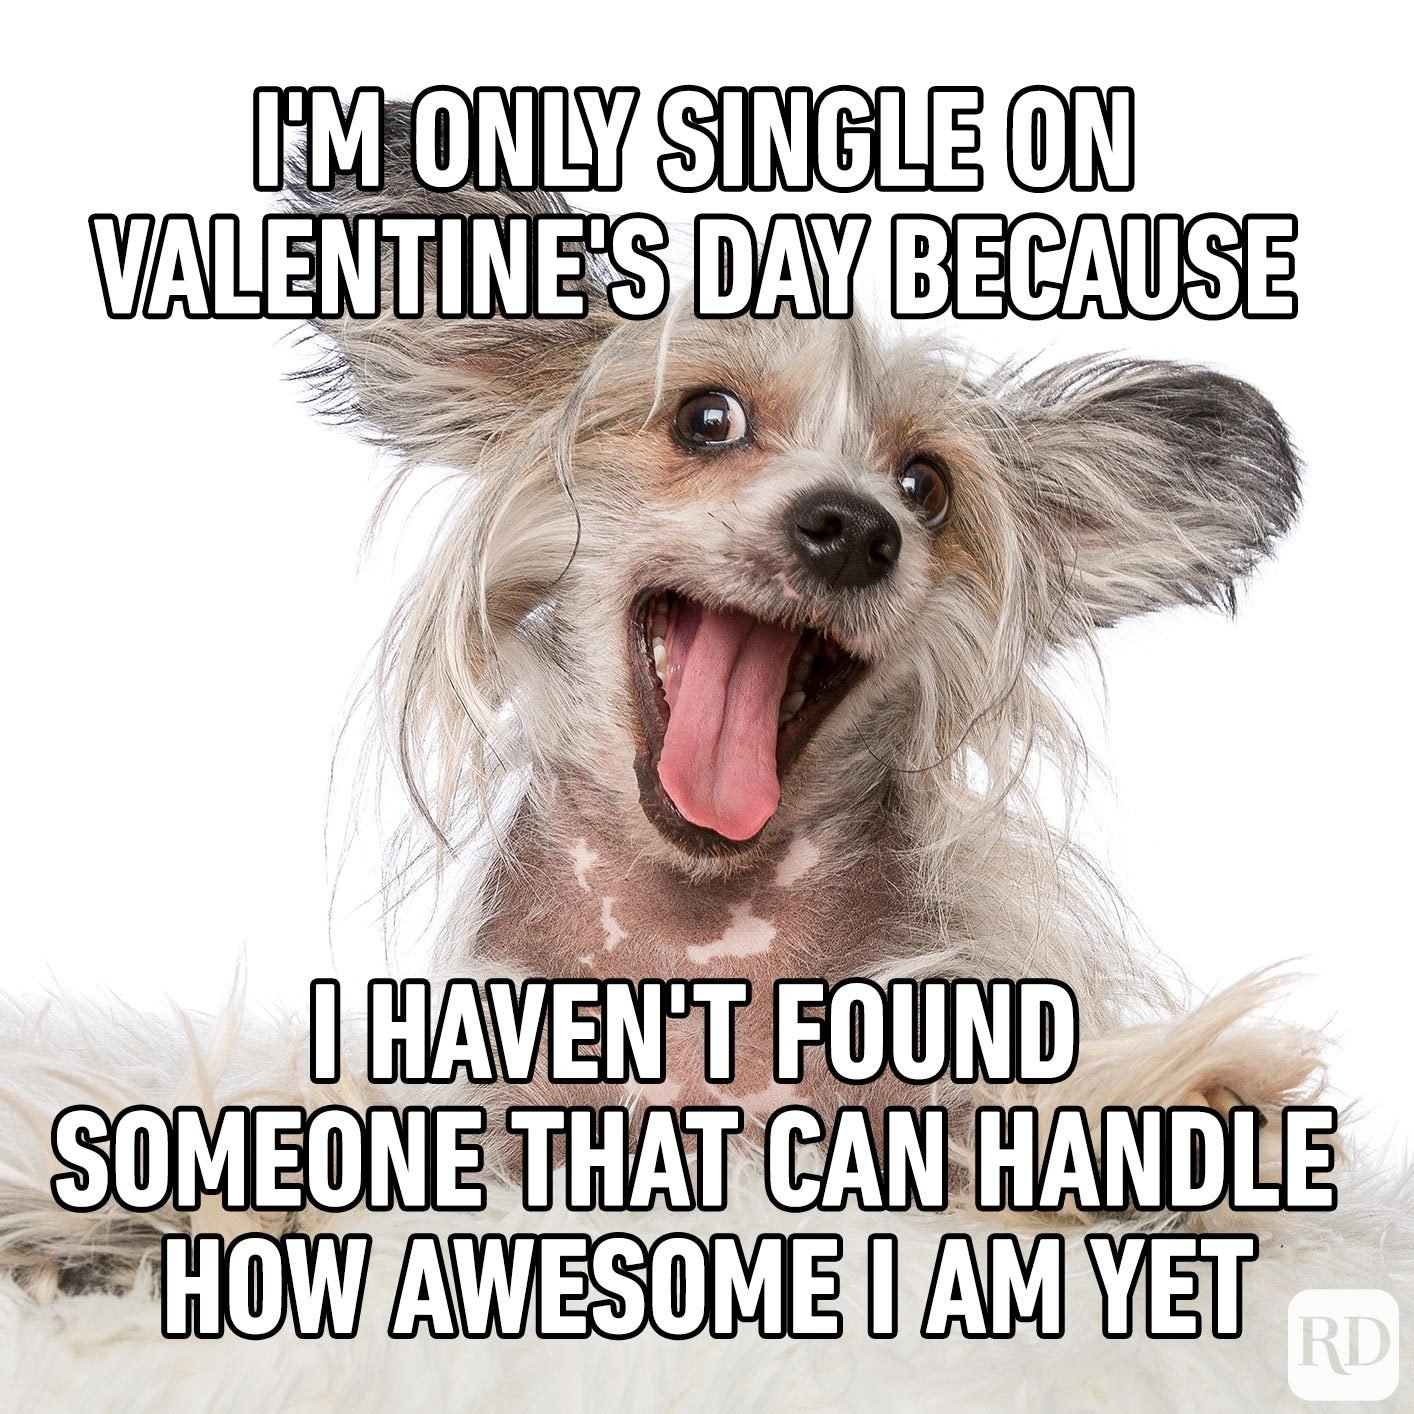 Dog looking crazy. Meme text: I'm only single on Valentine's Day because I haven't found someone that can handle how awesome I am yet.